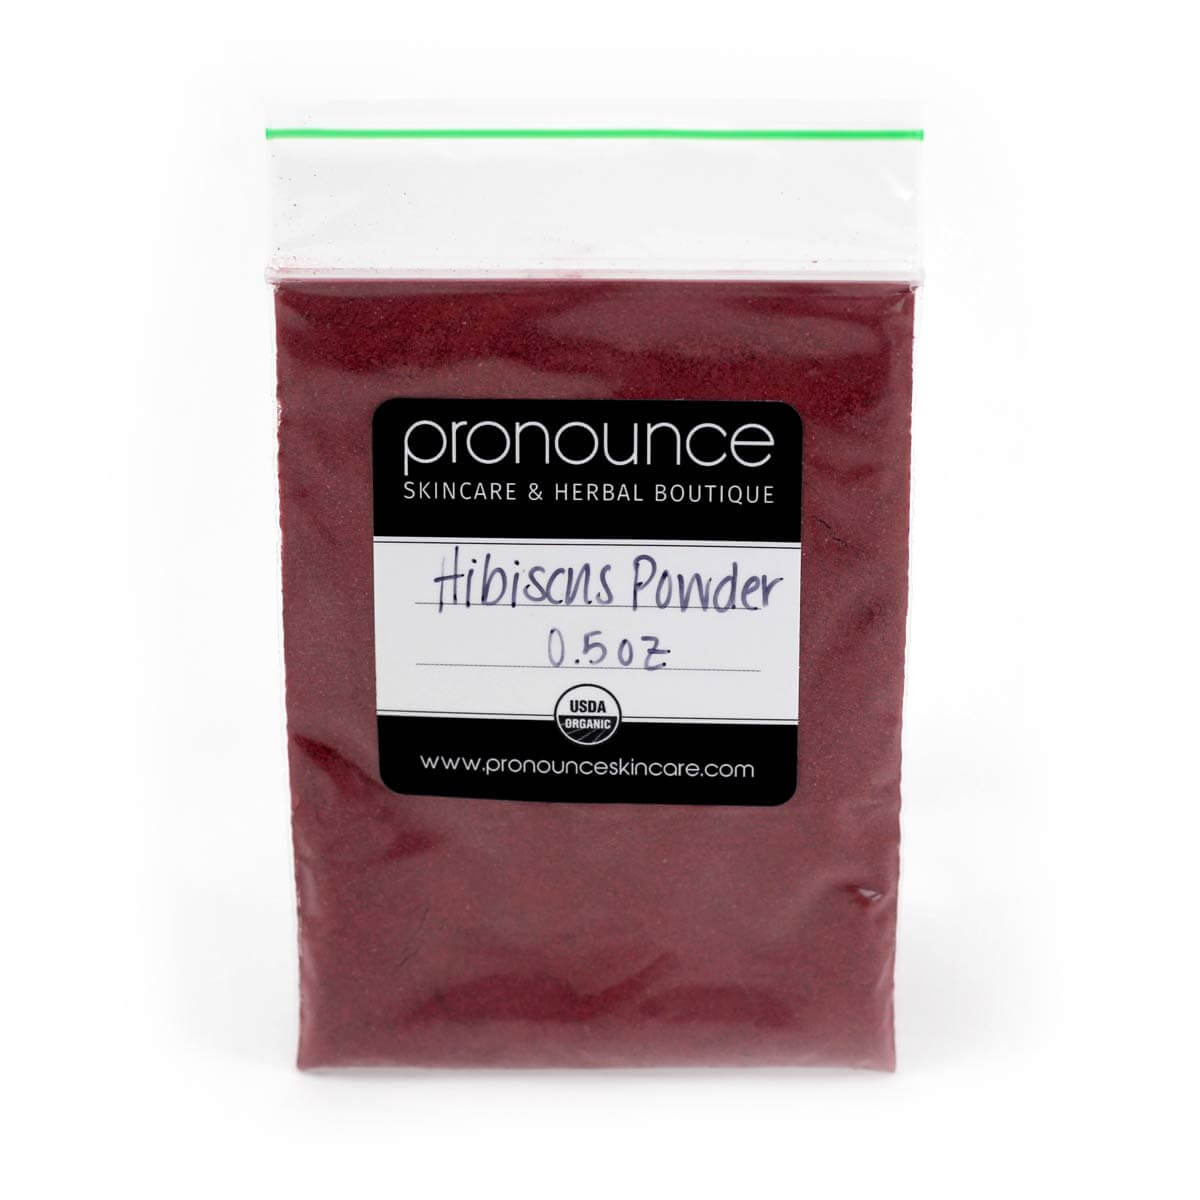 Hibiscus Flower Powder Pronounce Skincare Herbal Boutique